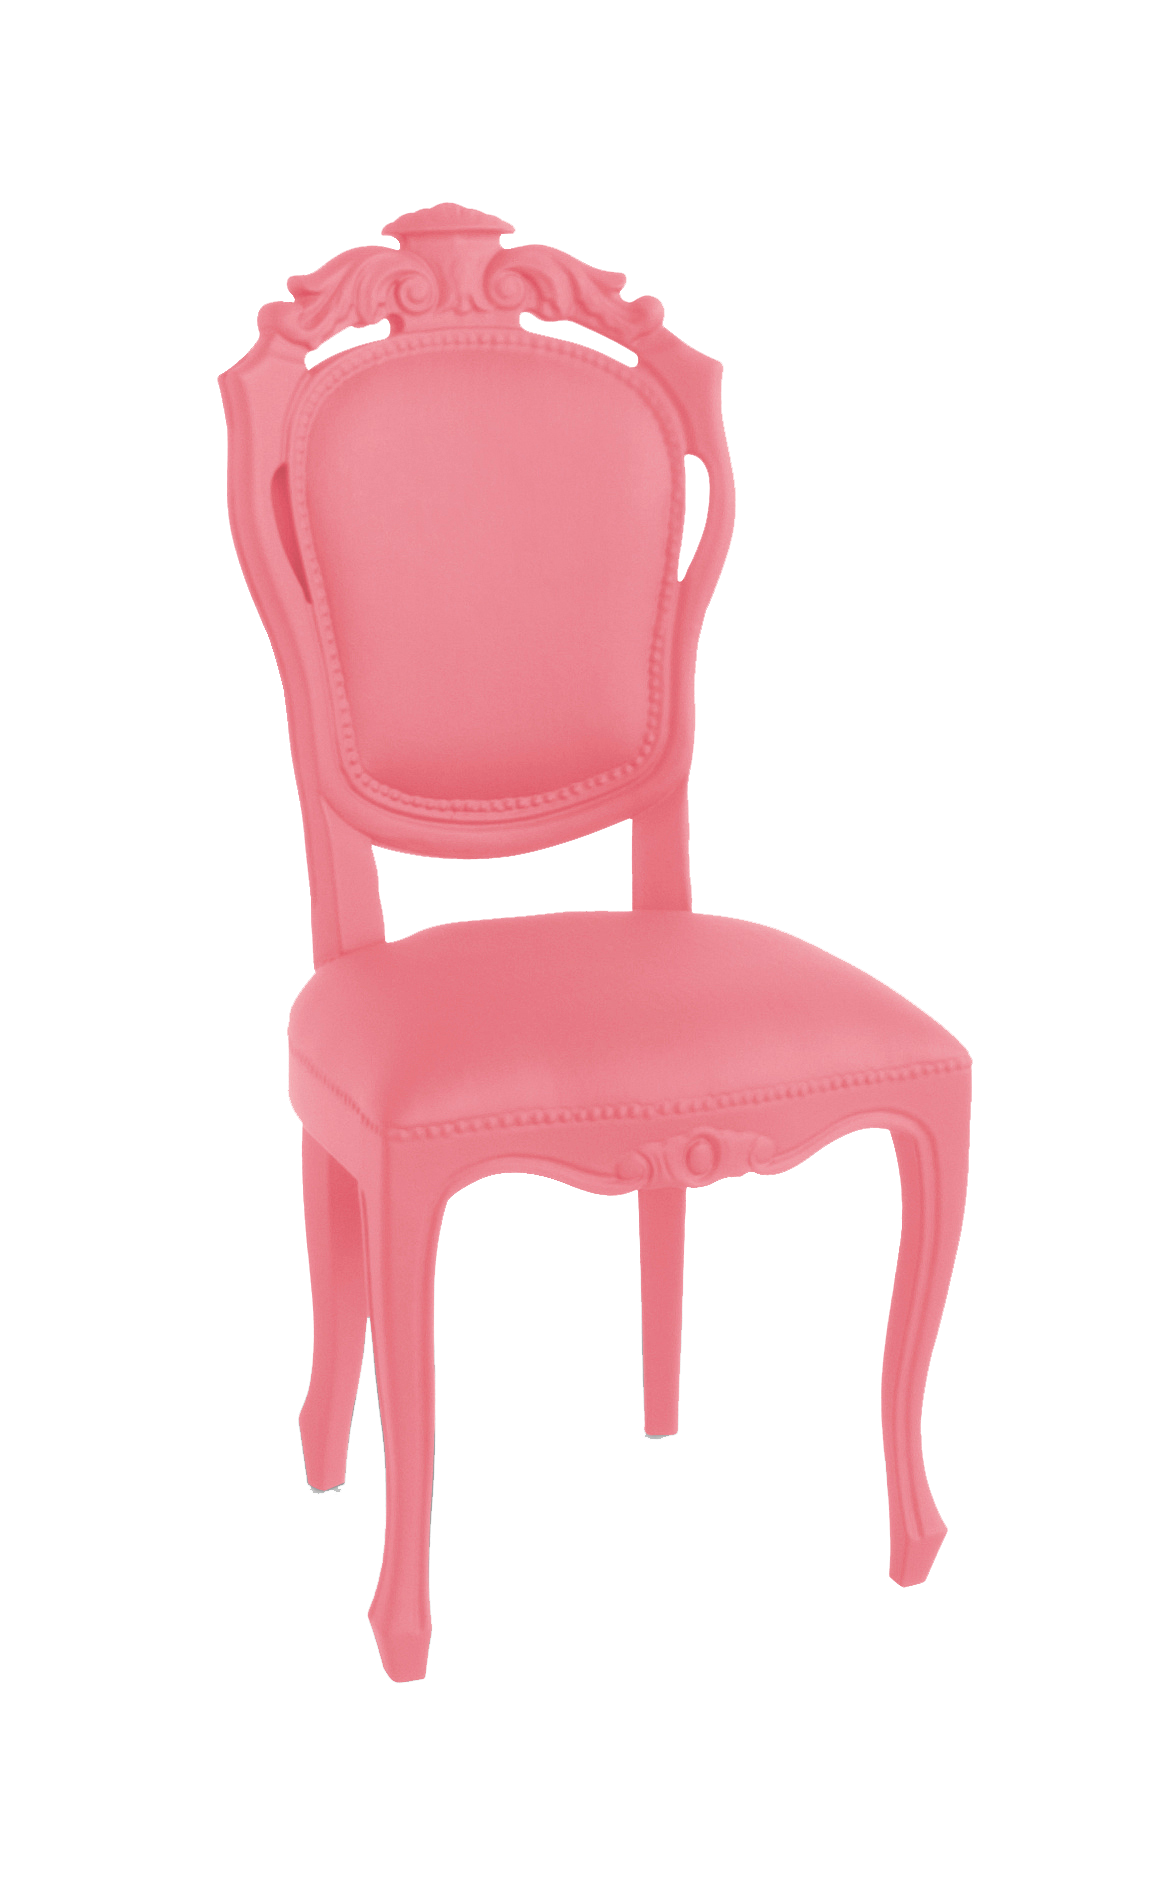 JSPR Plastic Fantastic Dining Chair Soft Pink